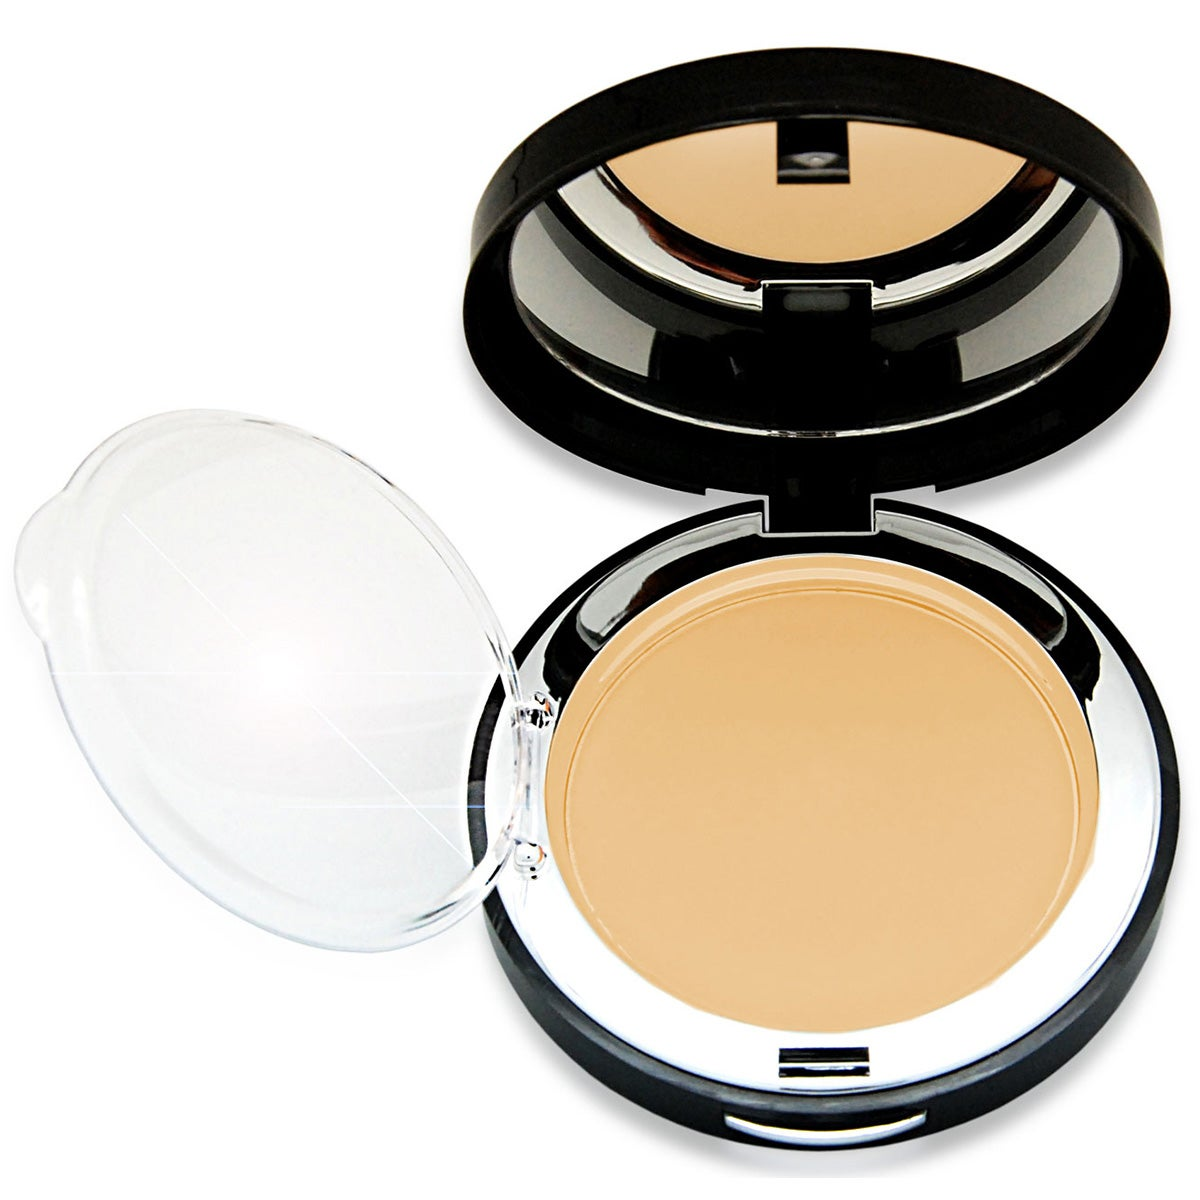 Cailyn Cosmetics Cailyn Deluxe Mineral Foundation